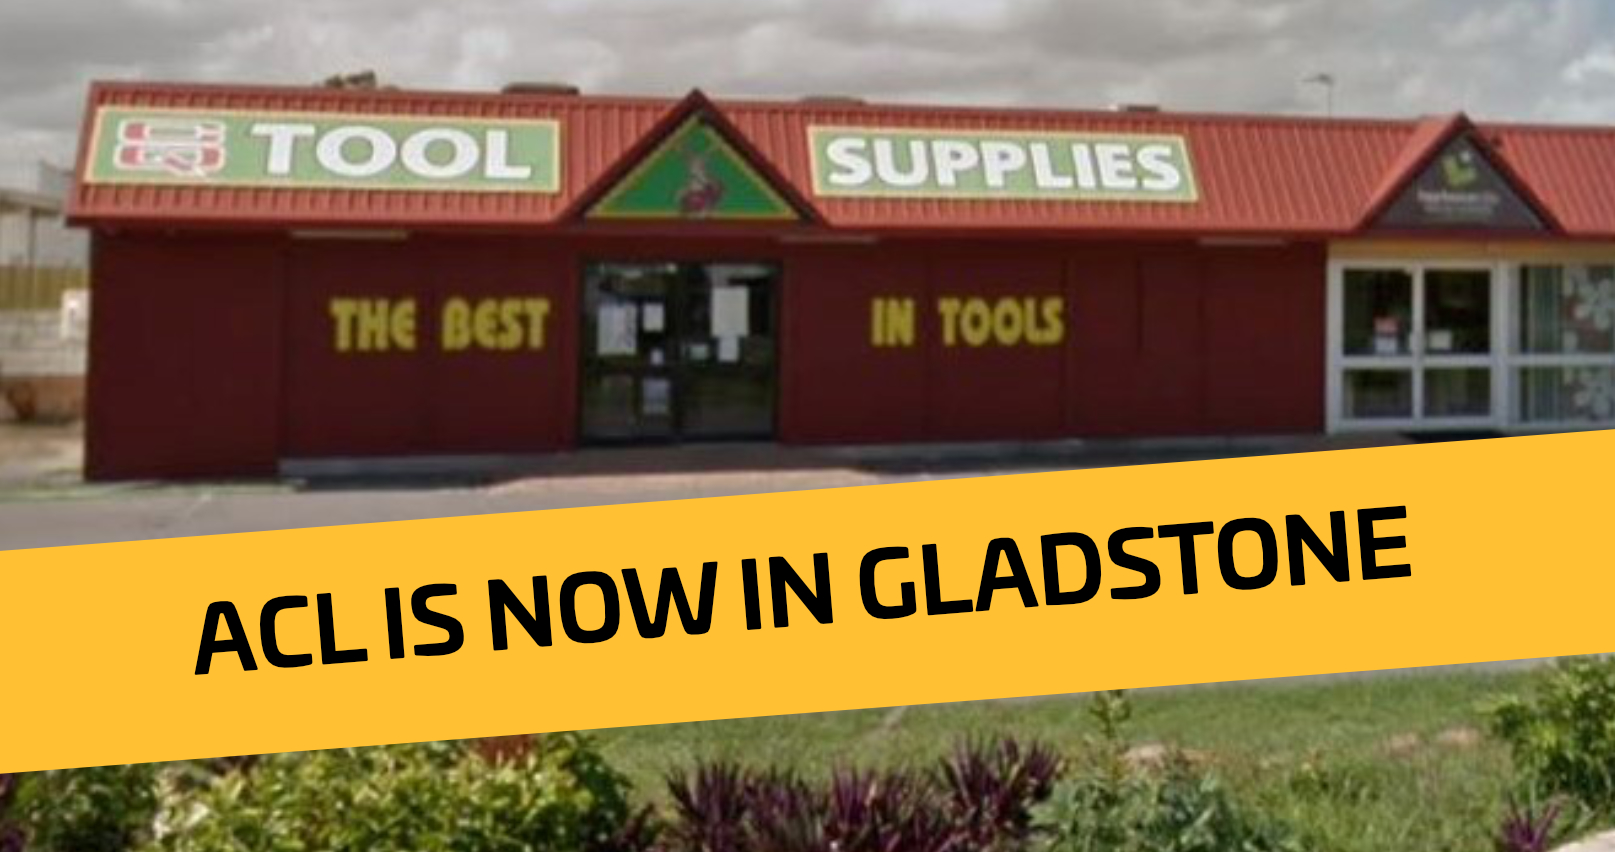 ACL Acquires CQ Tool Supplies in Gladstone!